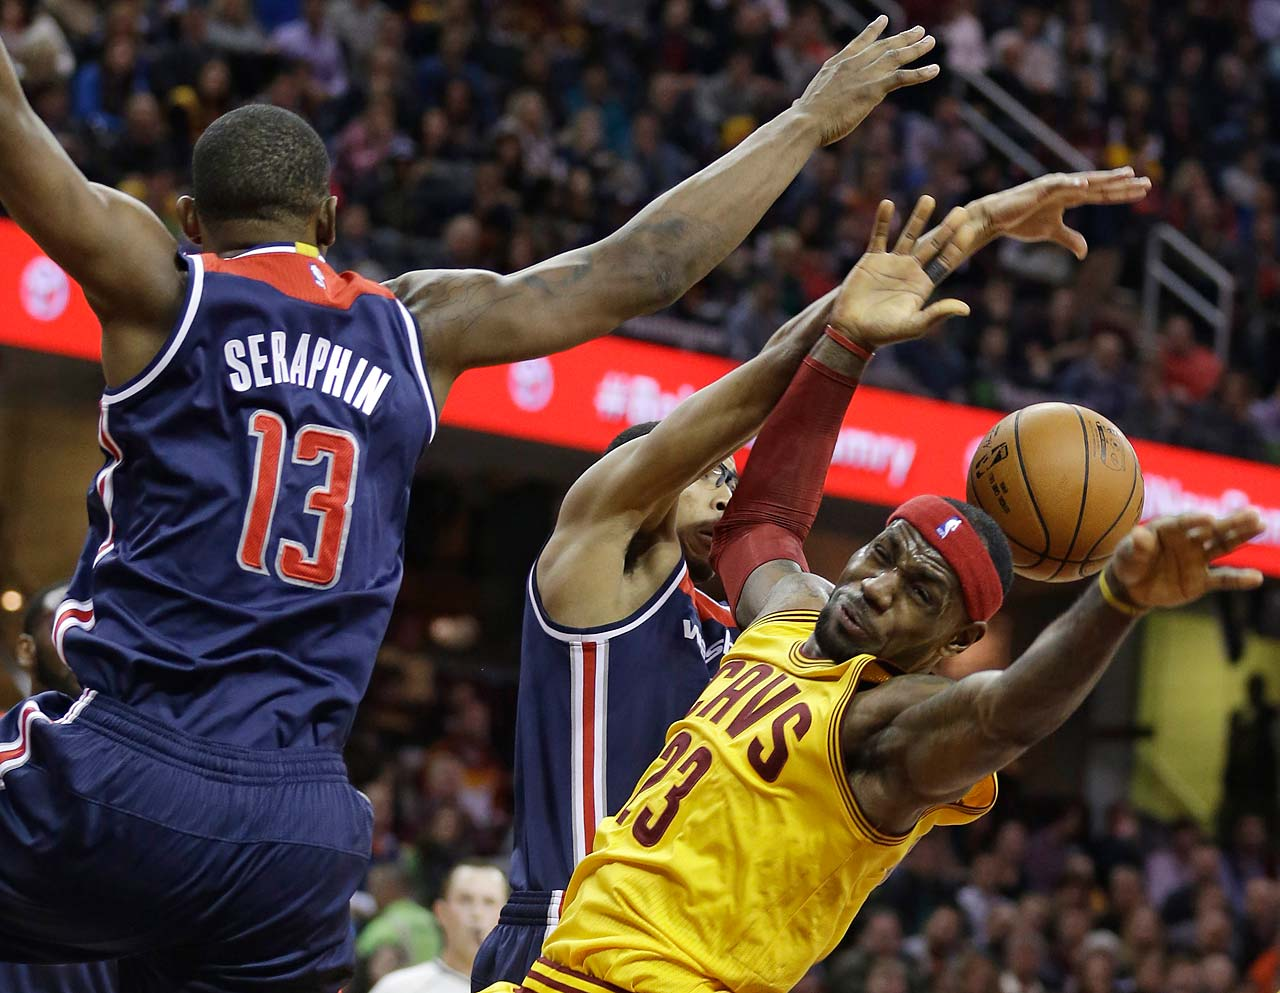 LeBron James is fouled by Kevin Seraphin of the Washington Wizards during a Nov. 26, 2014, game in Cleveland.